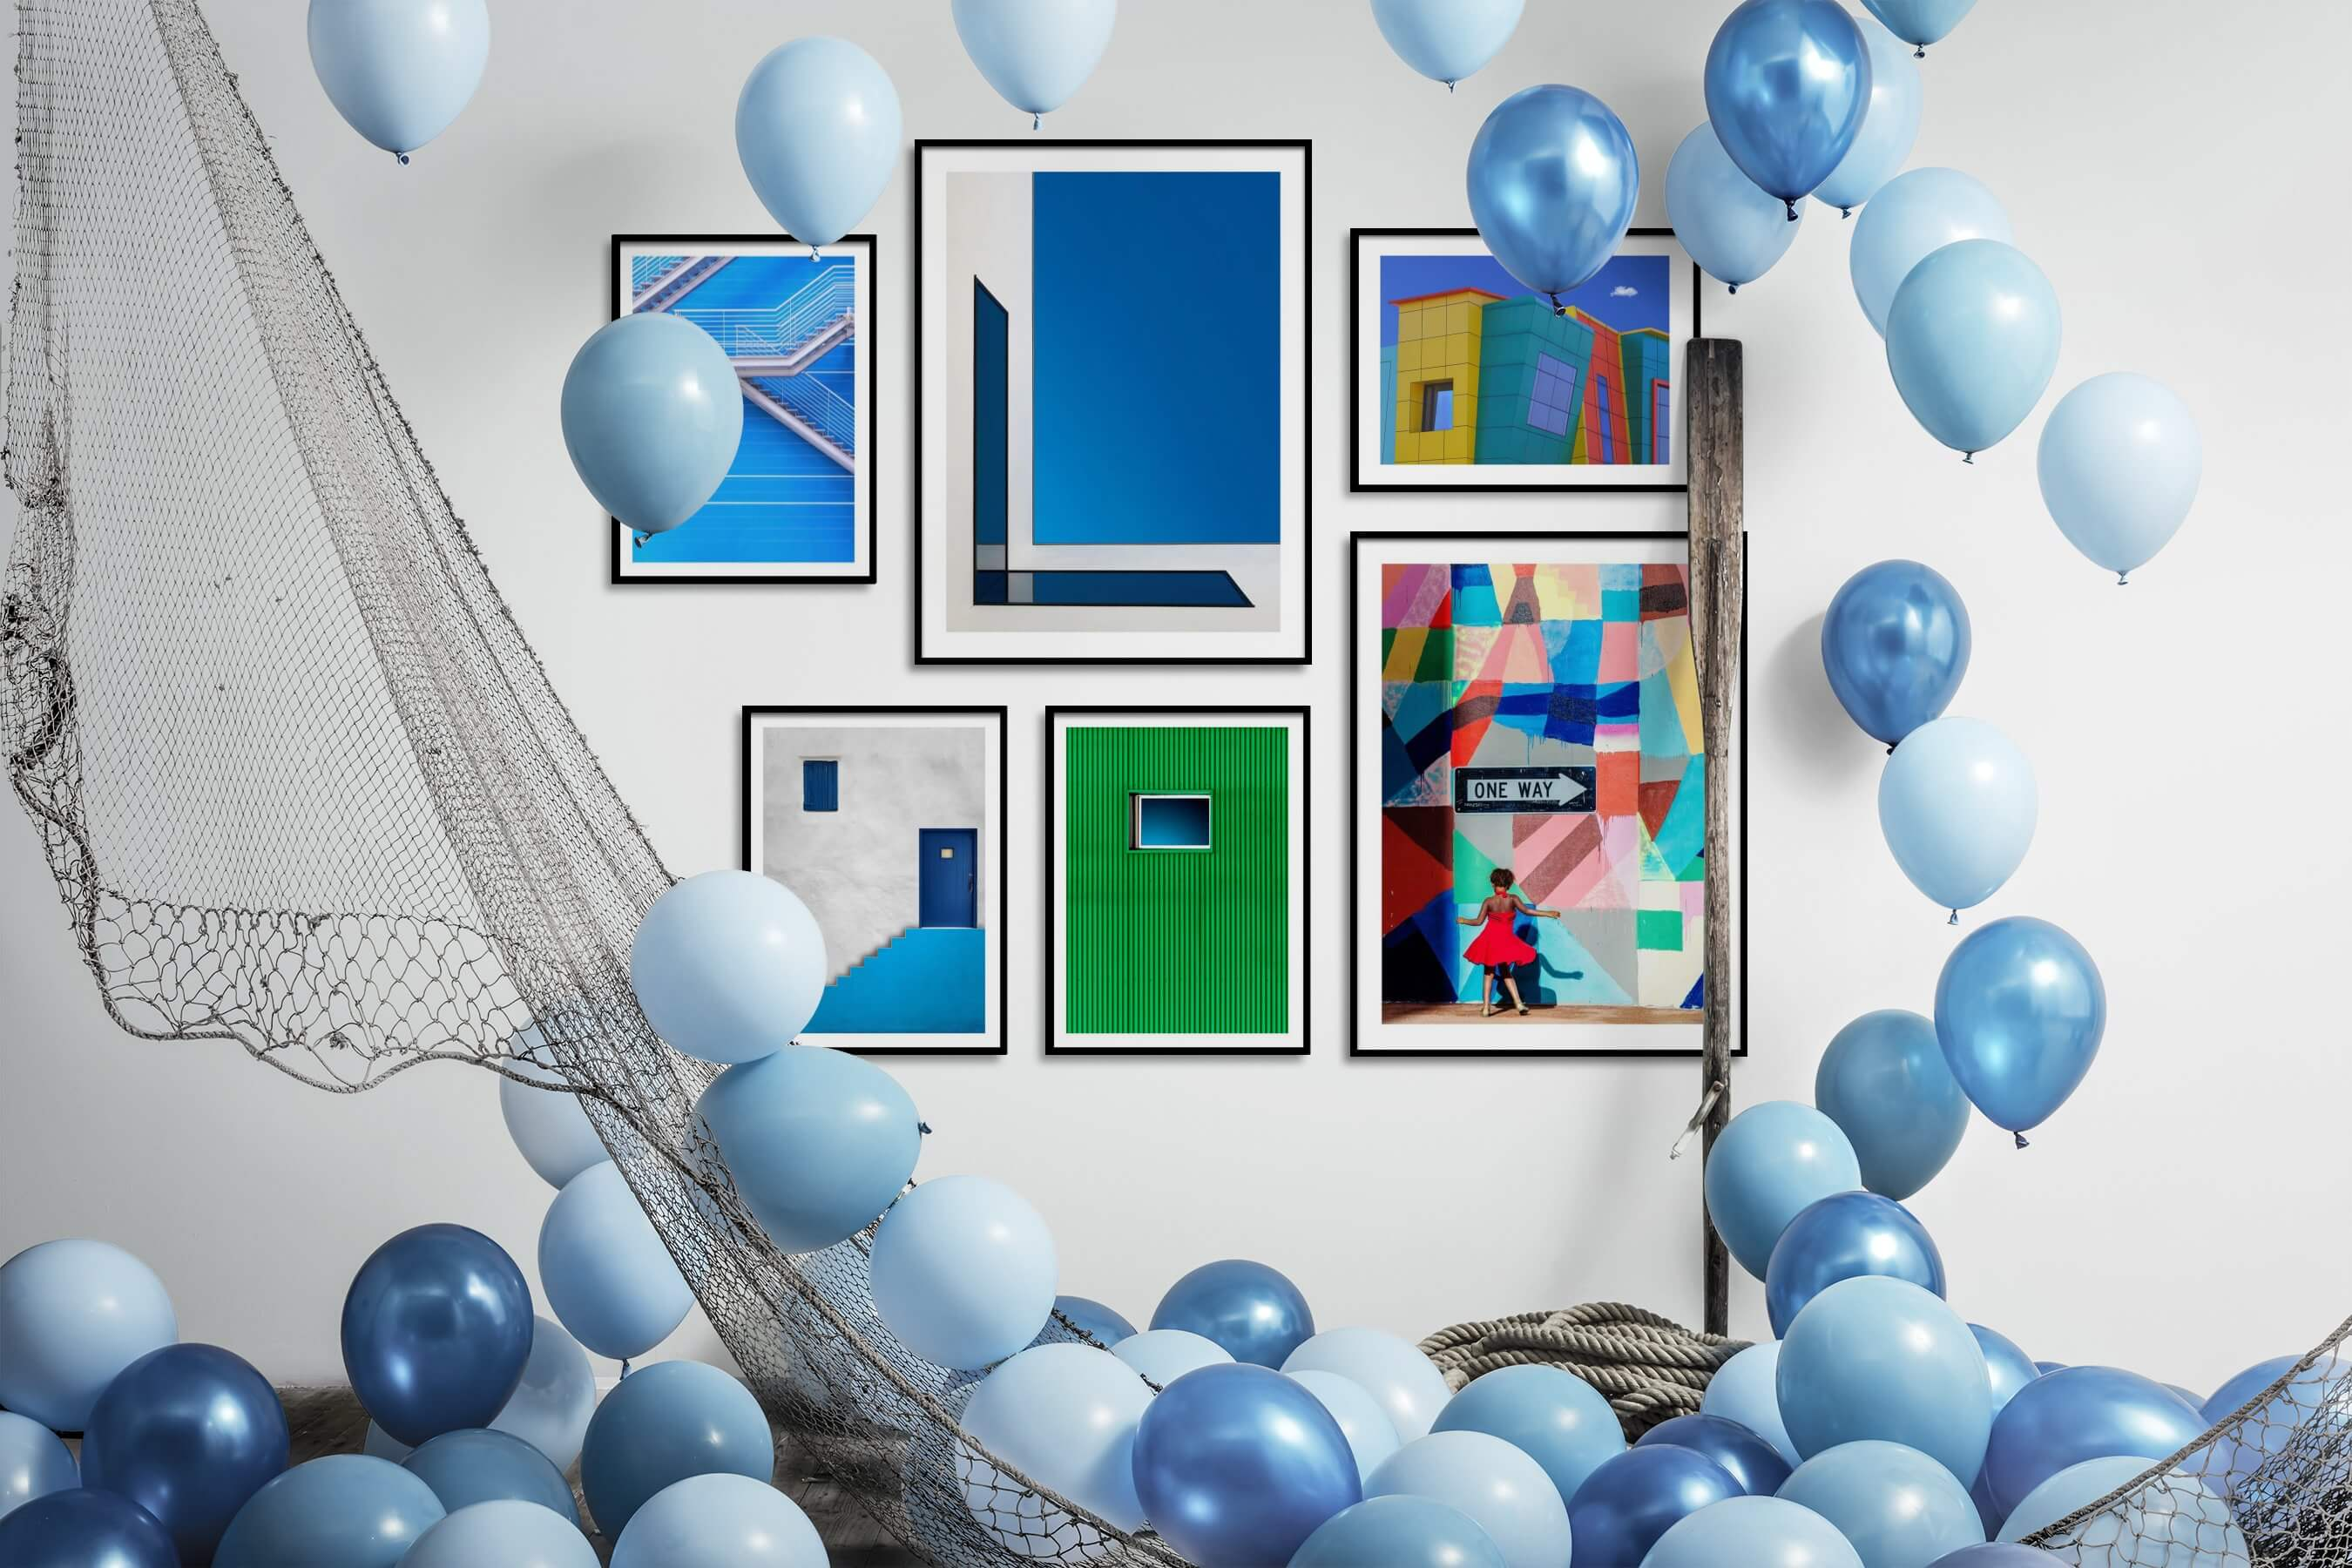 Gallery wall idea with six framed pictures arranged on a wall depicting For the Minimalist, For the Moderate, City Life, Colorful, and For the Maximalist